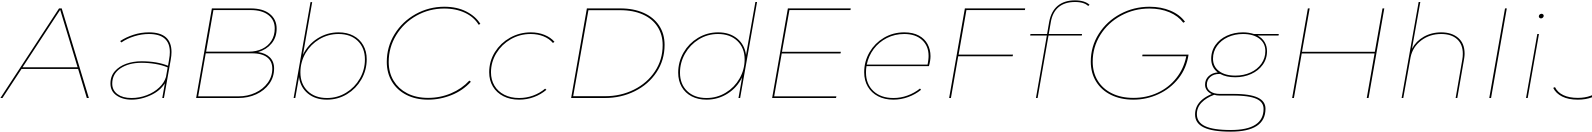 Typold Extended ExtraThin Italic Font